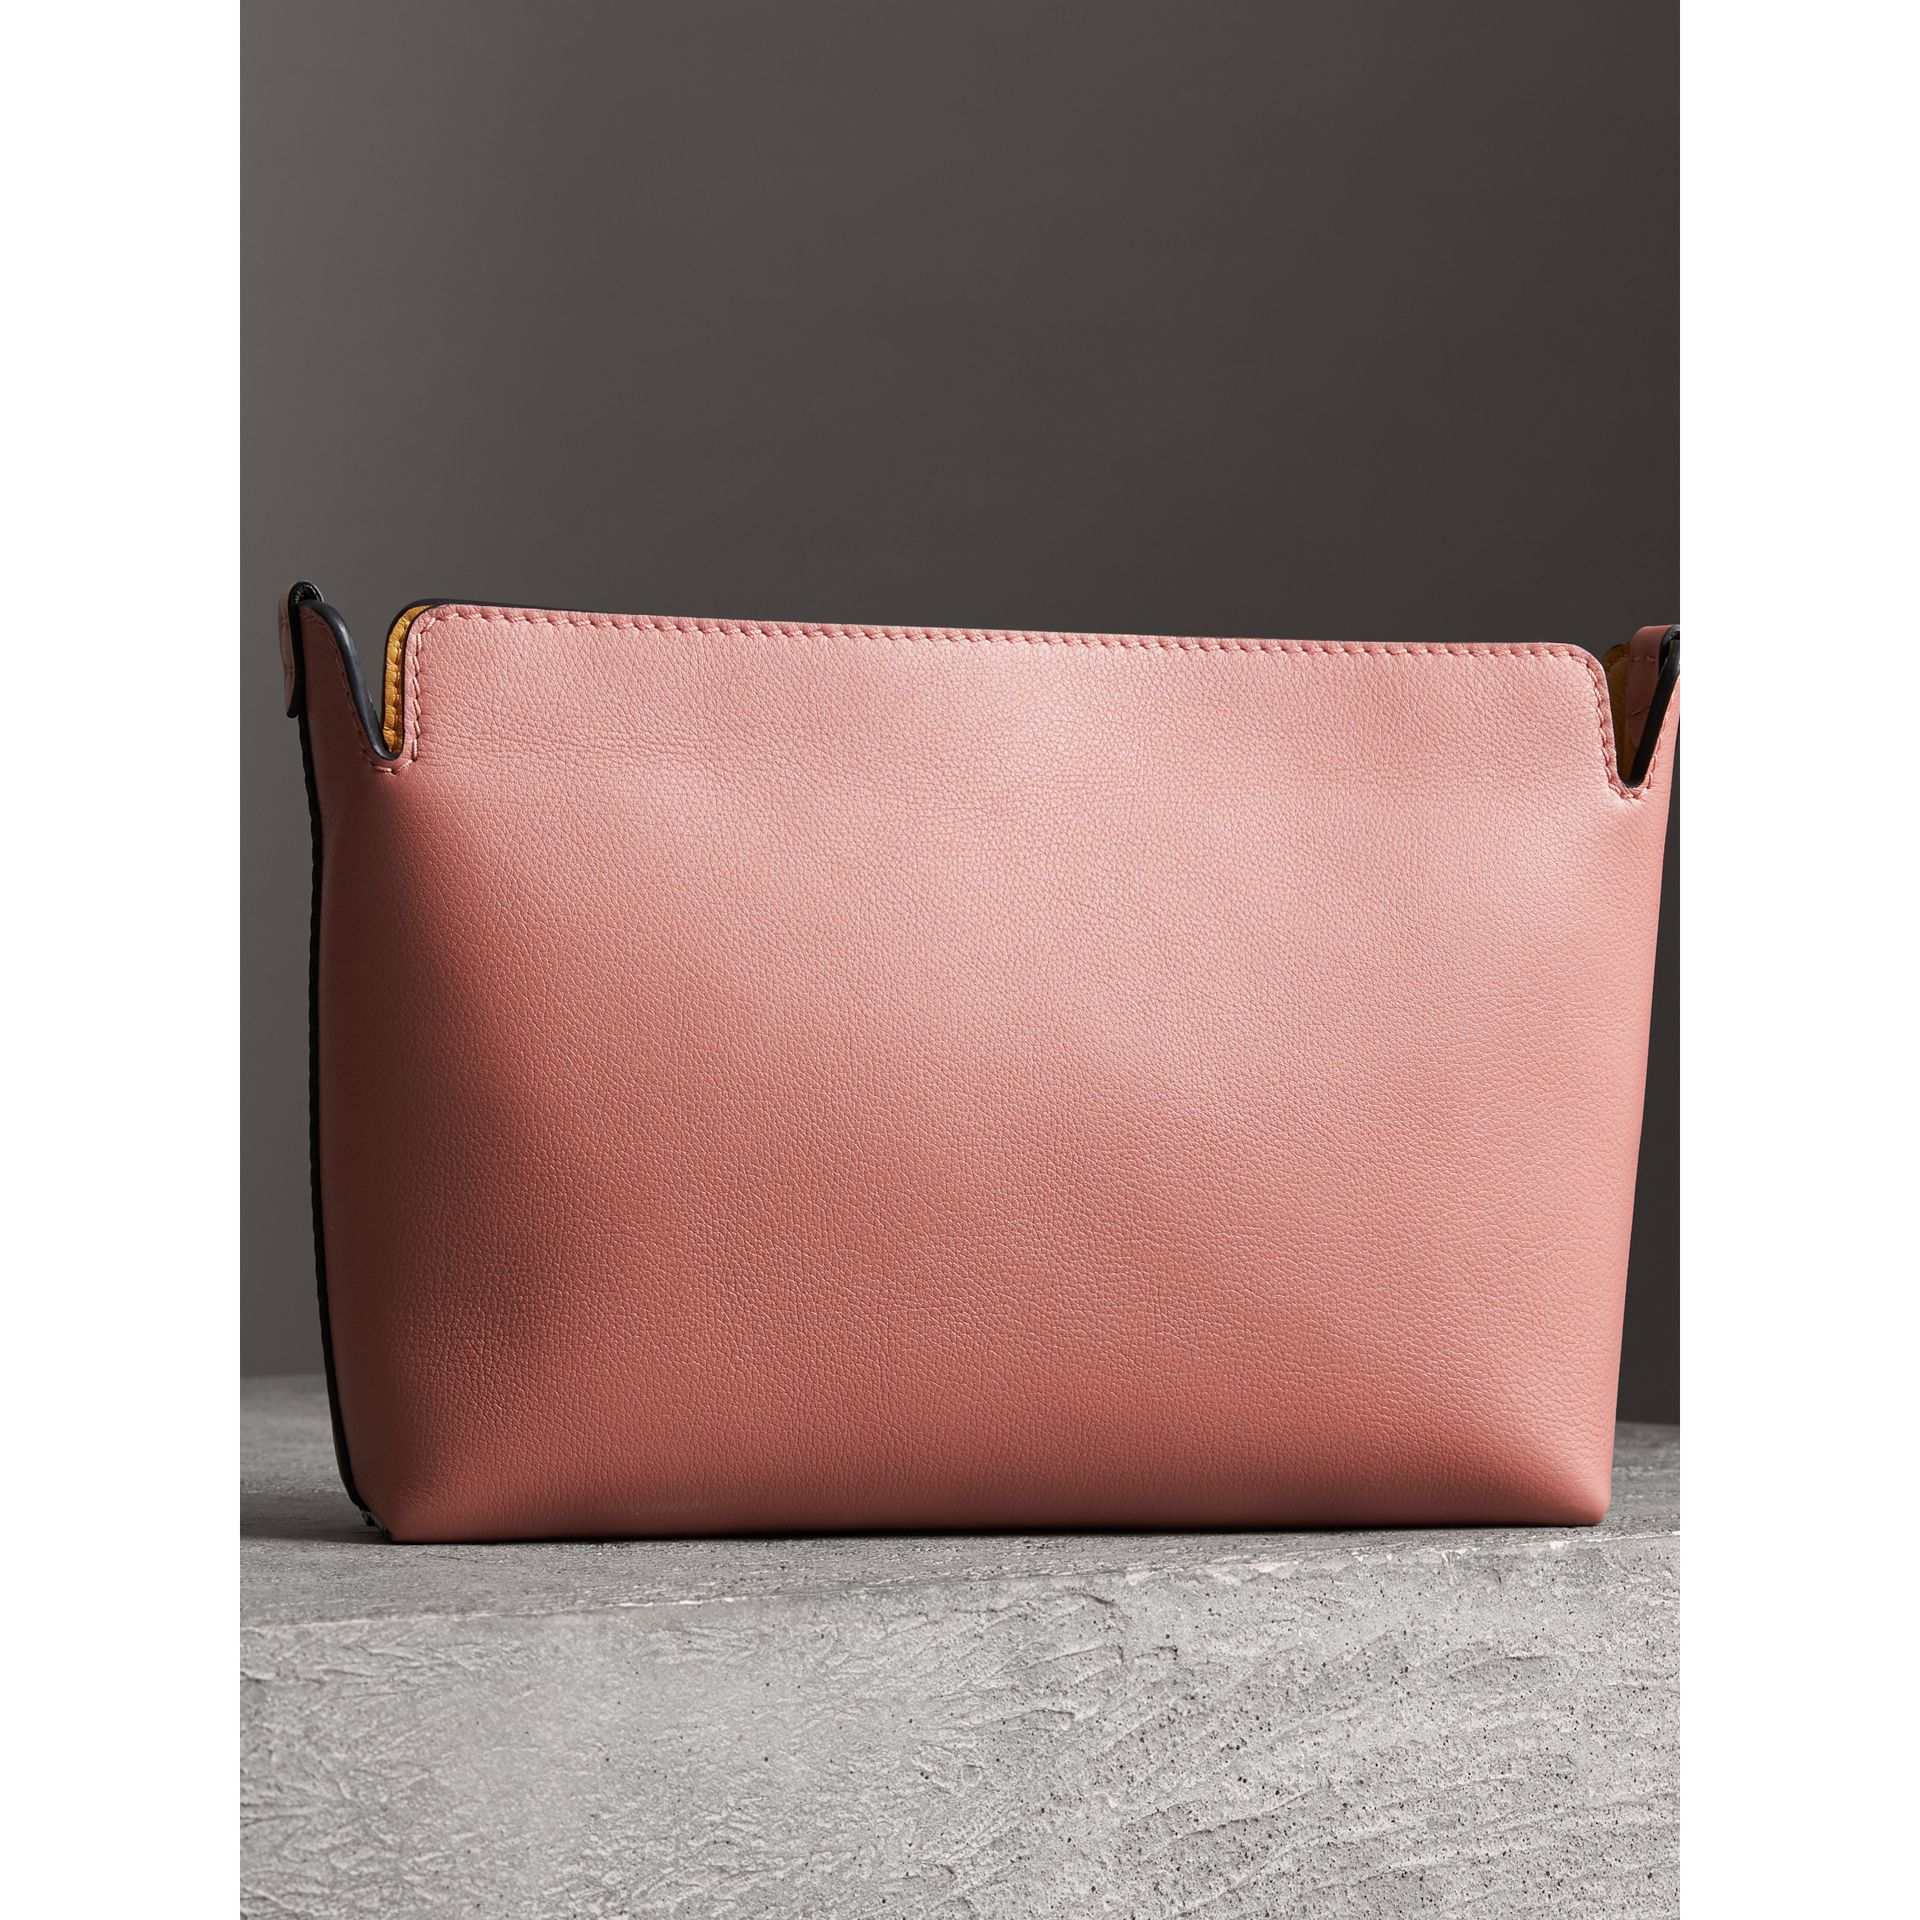 Medium Tri-tone Leather Clutch in Deep Claret/dusty Rose | Burberry - gallery image 4